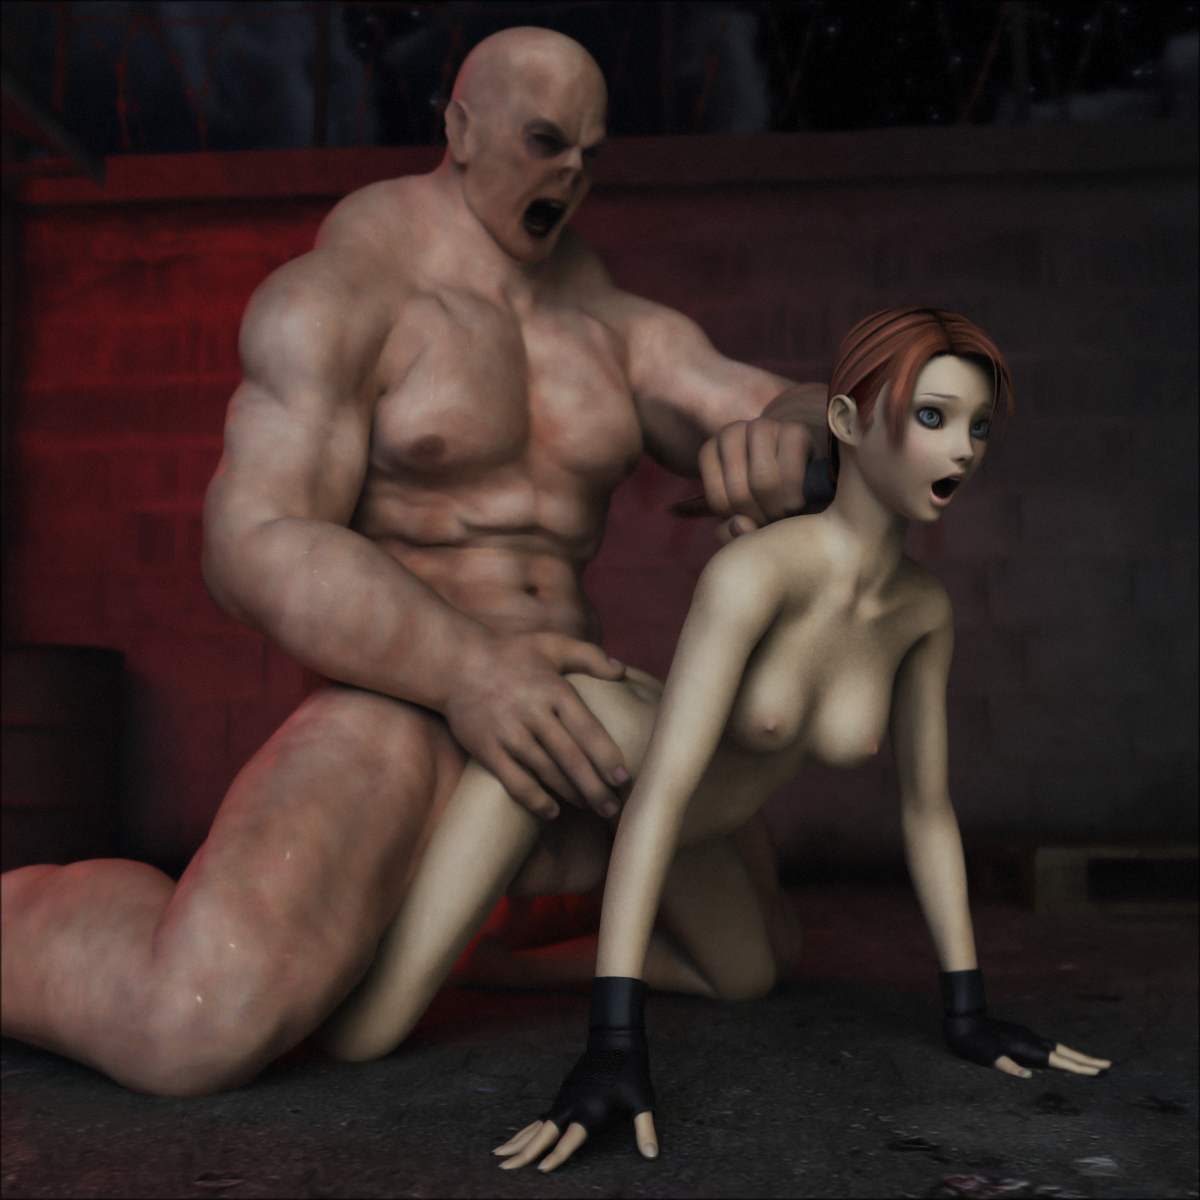 Sexy demon animated porn video 3gp sex clips